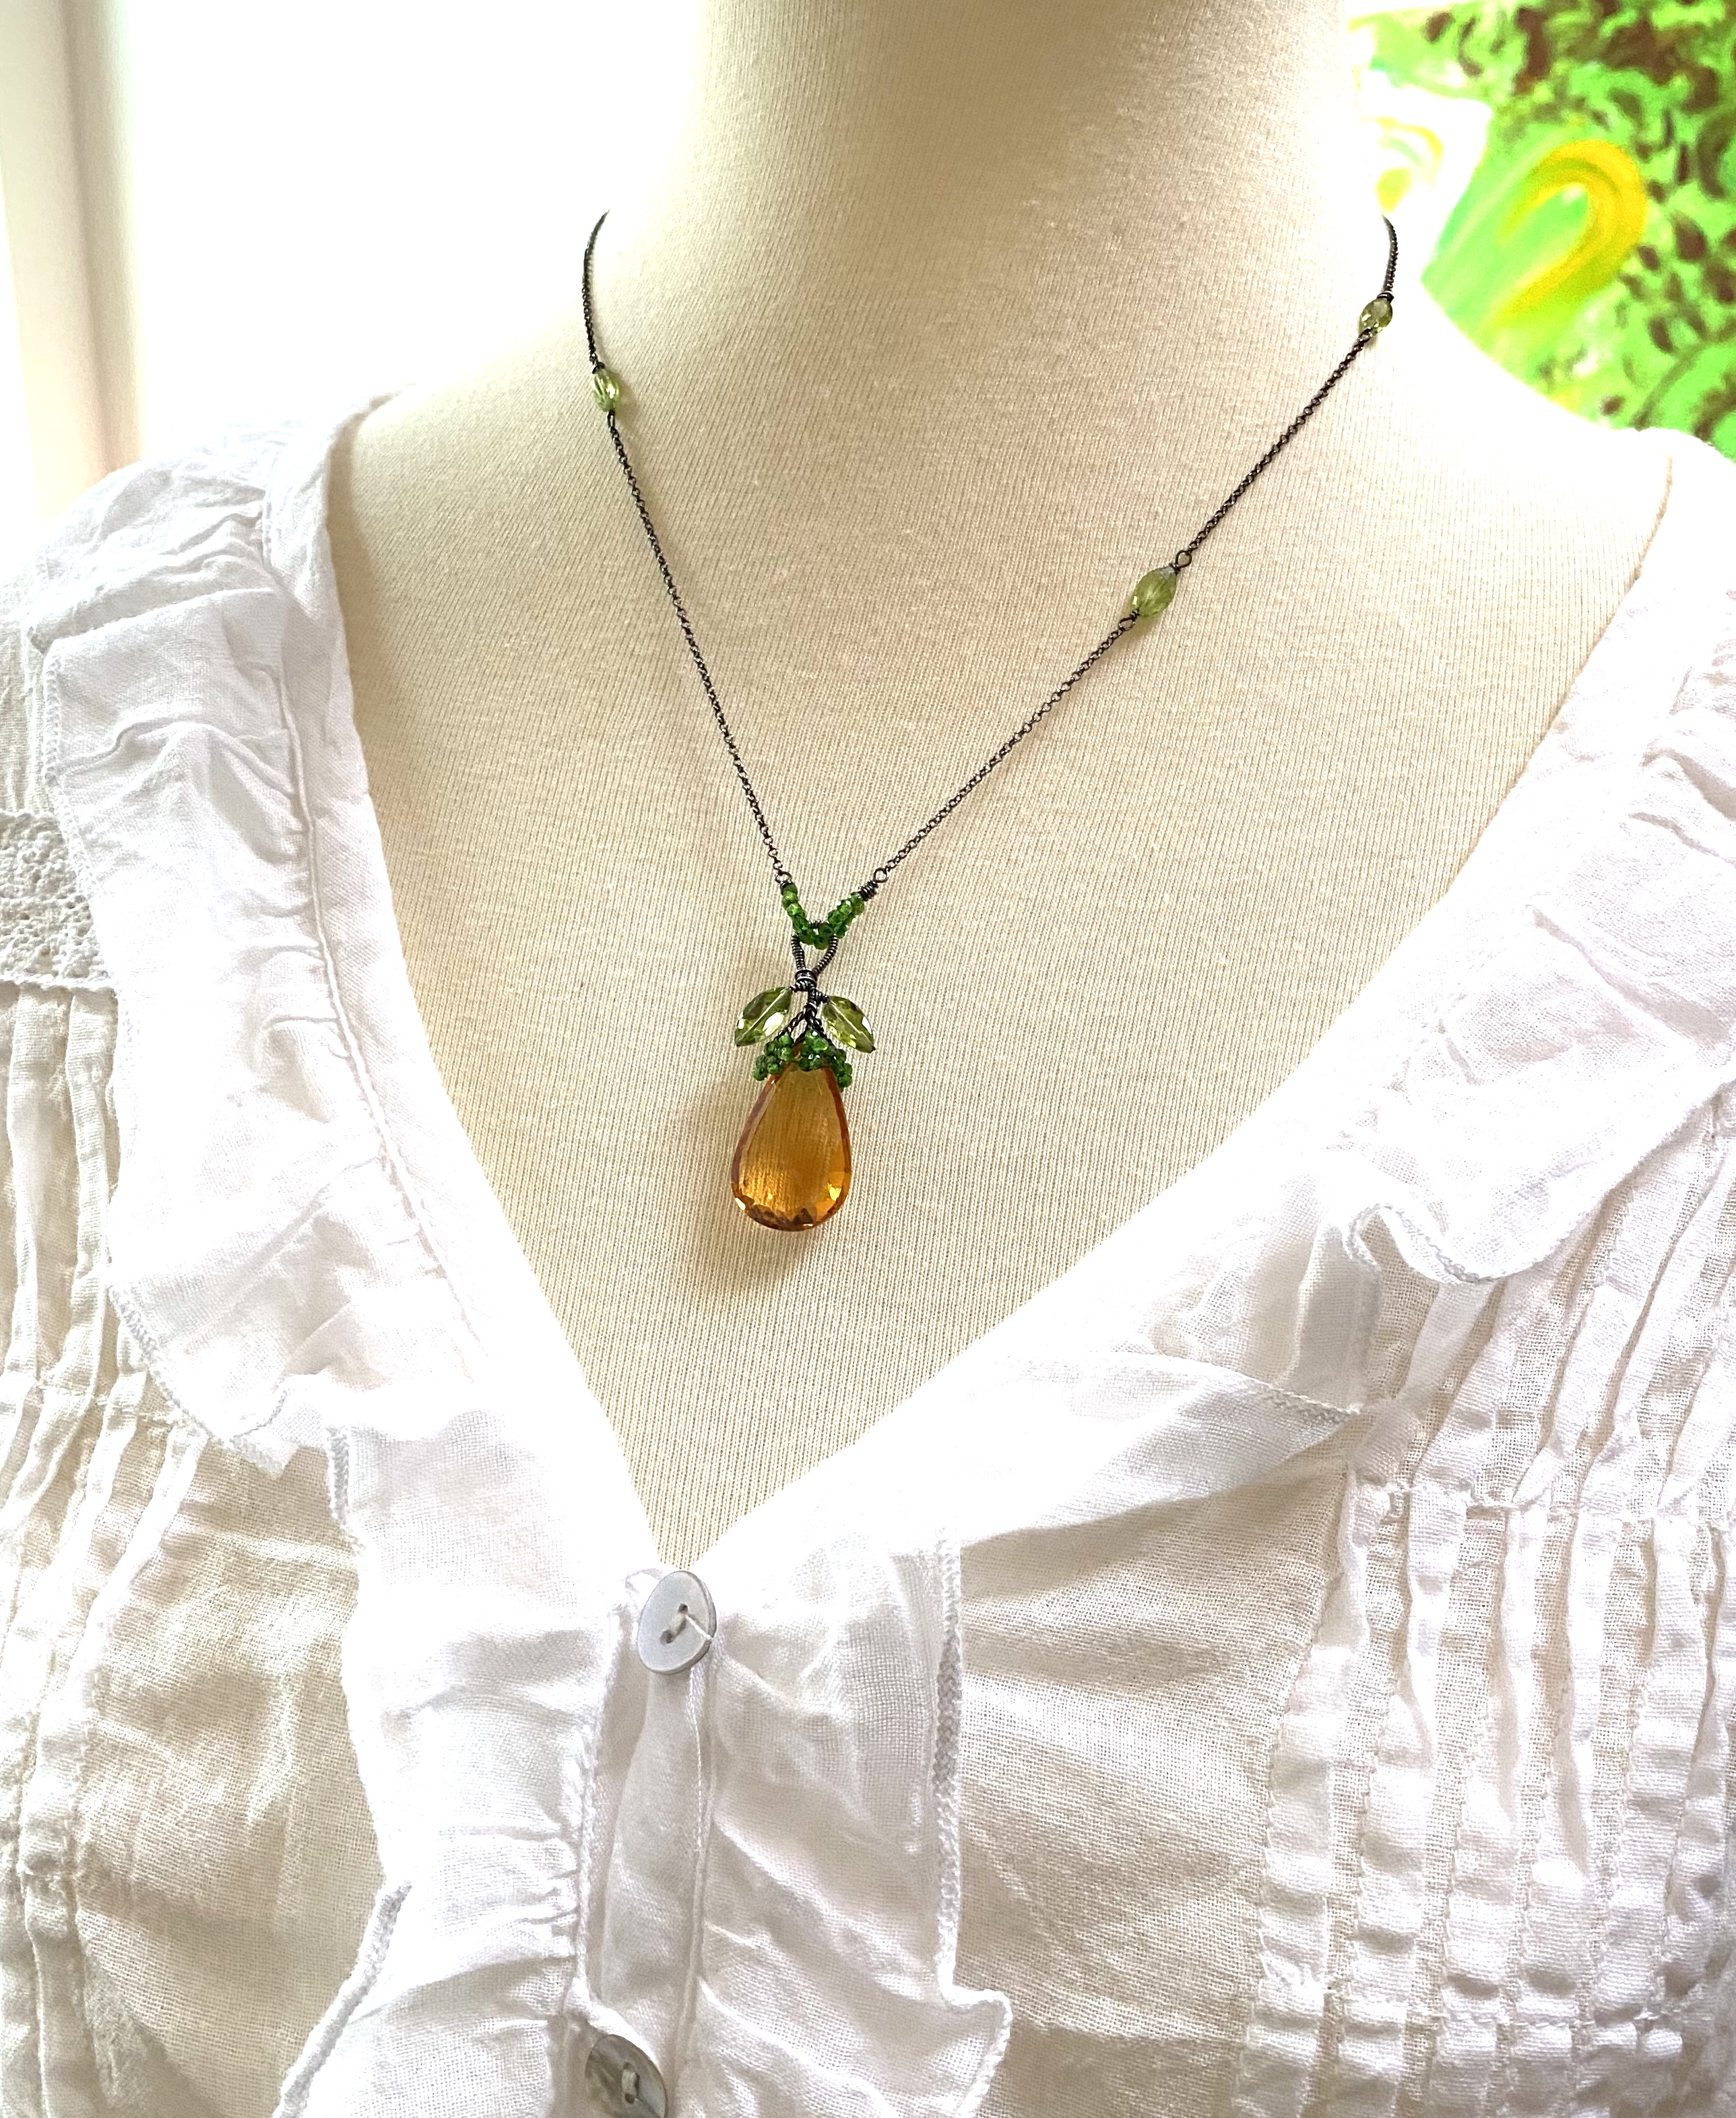 Veronica Fruit Necklace